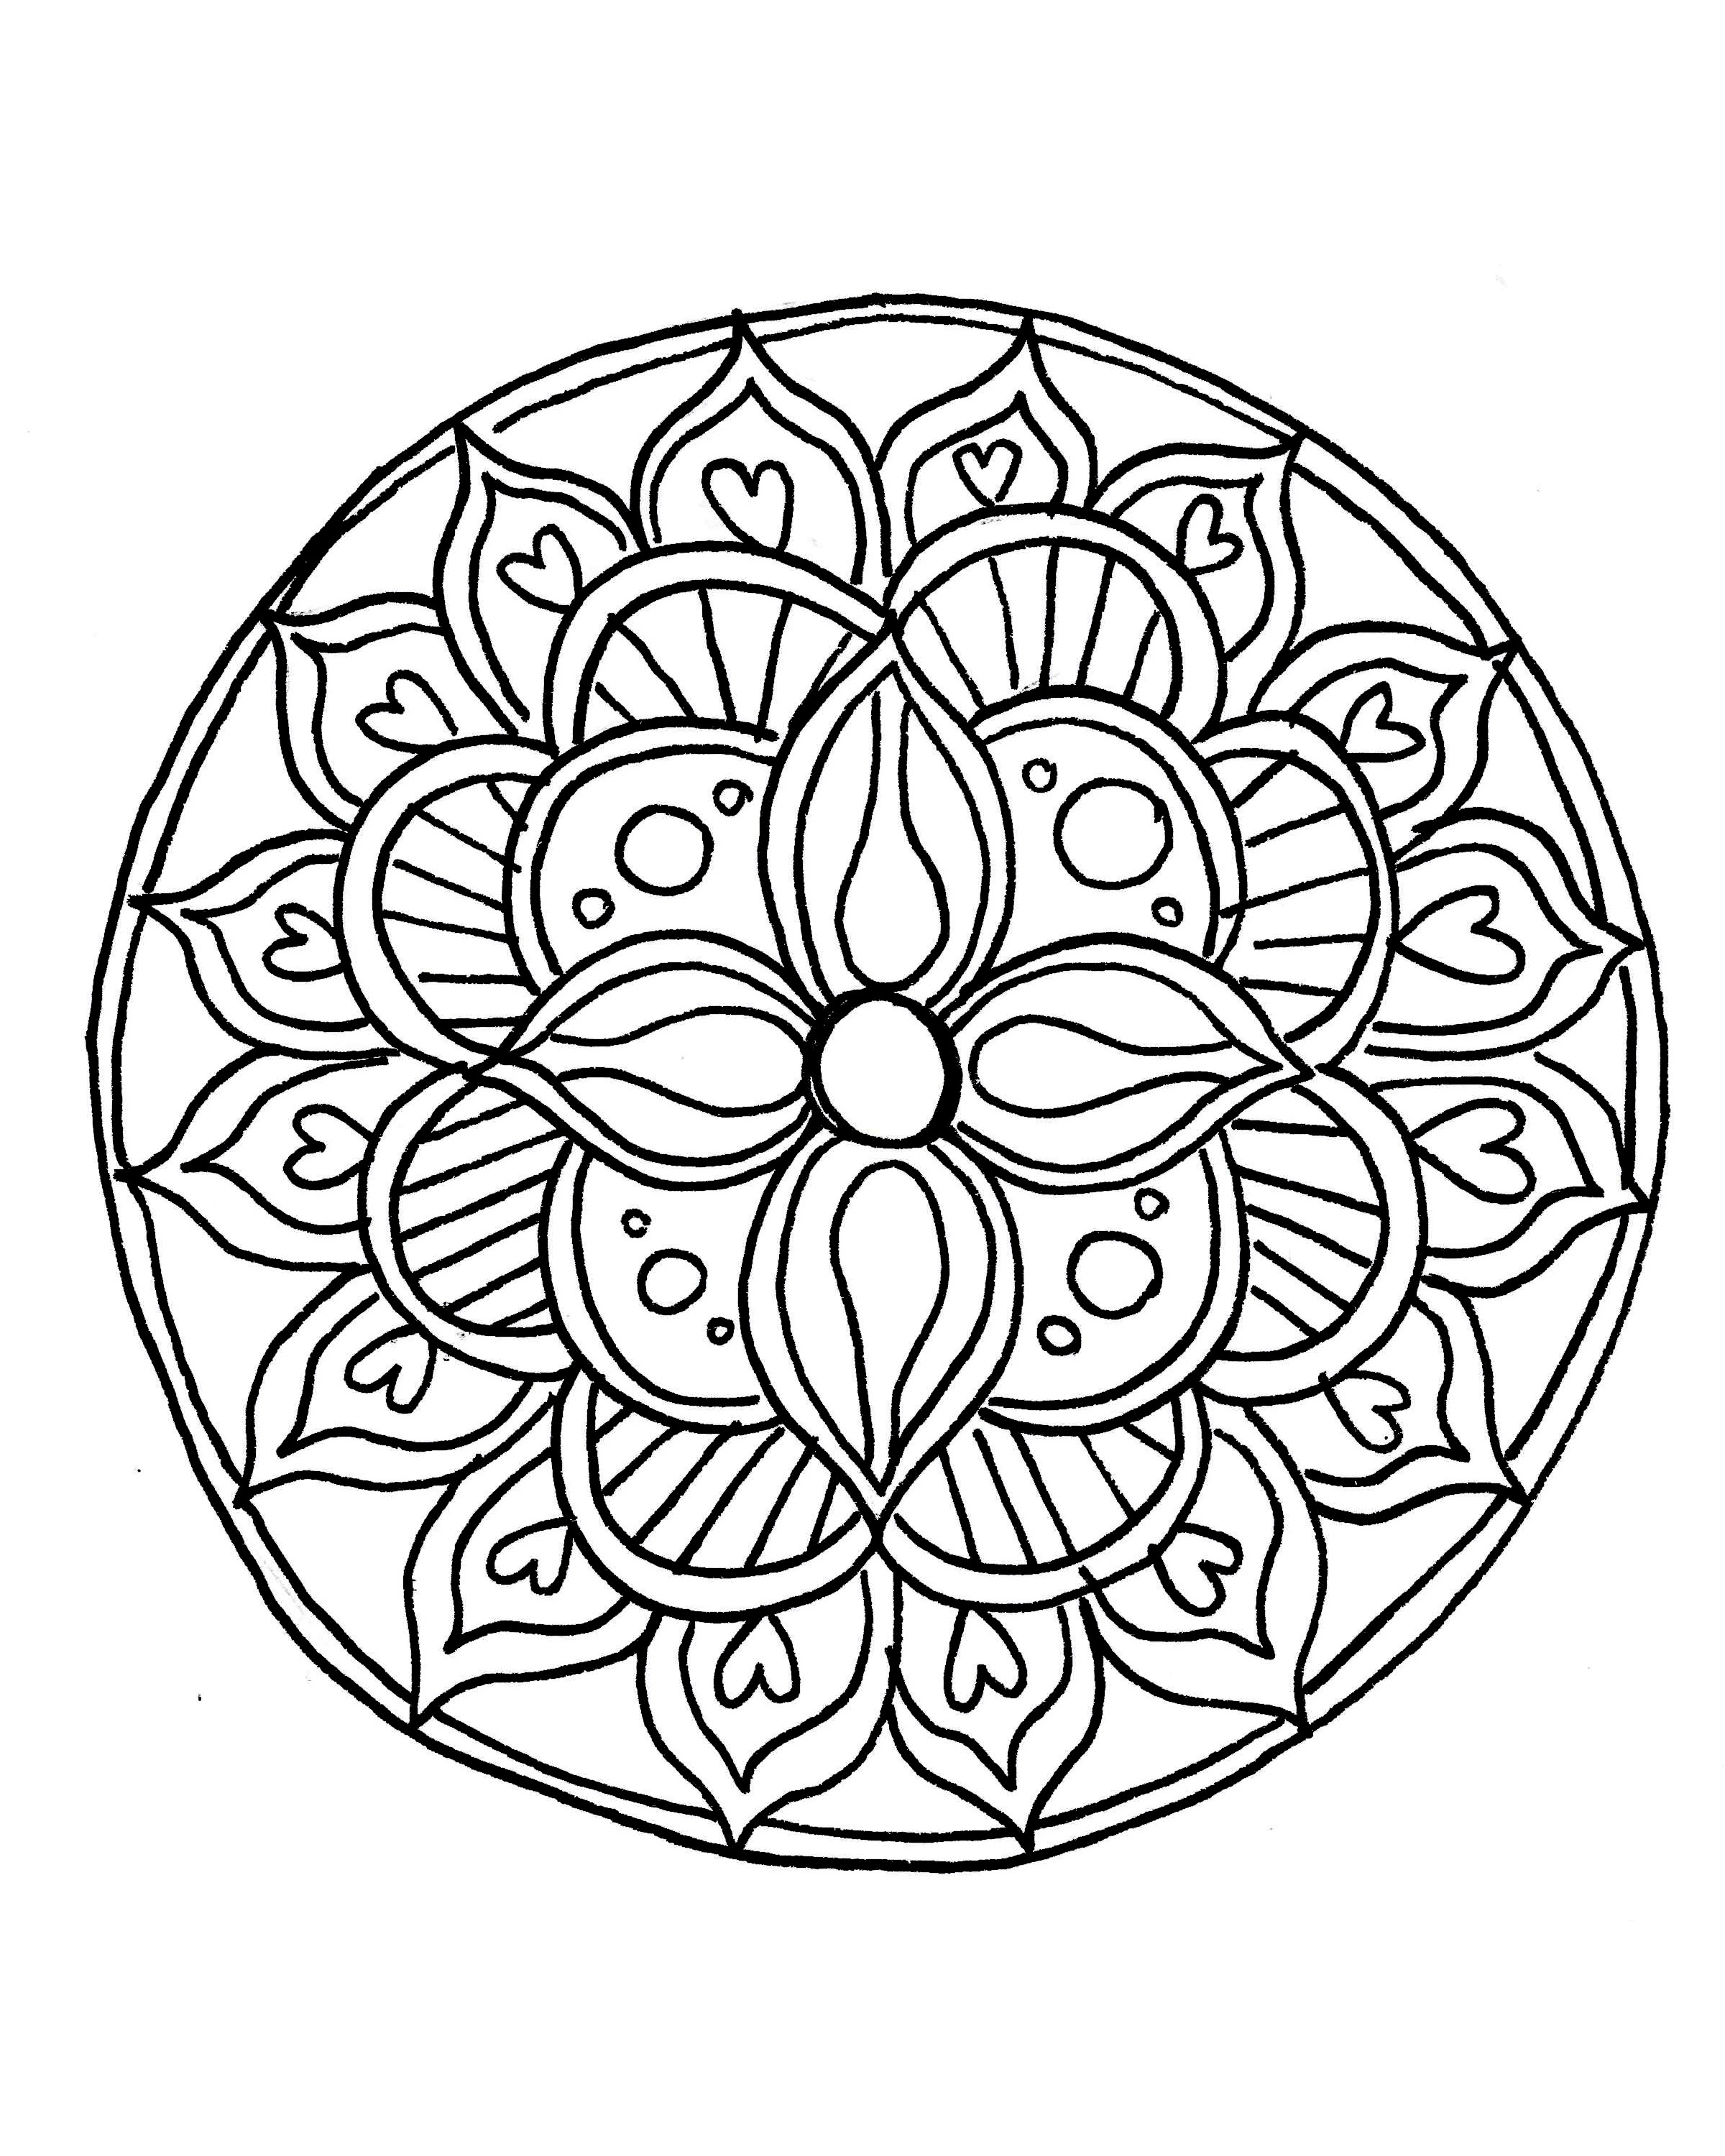 Mandala Art Coloring Pages  How to Draw a Mandala With FREE Coloring Pages